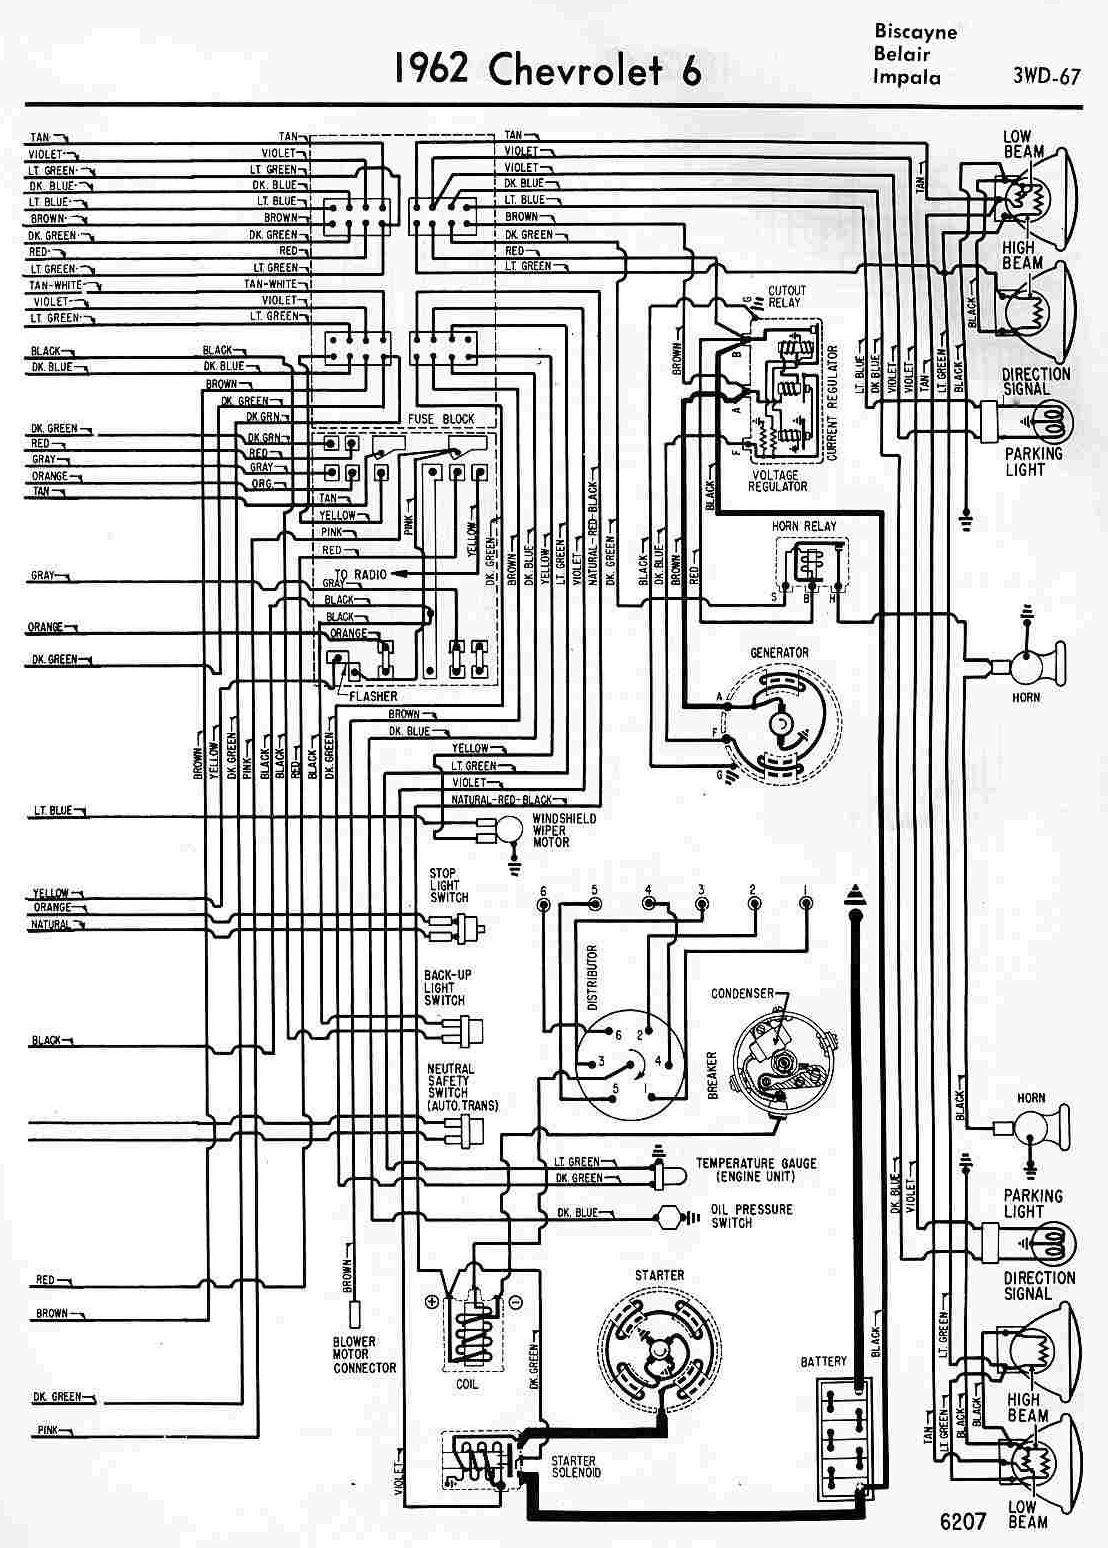 1962+Chevrolet+6+Biscayne%252C+Belair+and+Impala+Wiring+Diagram december 2011 all about wiring diagrams Chevy Truck Wiring Diagram at cos-gaming.co